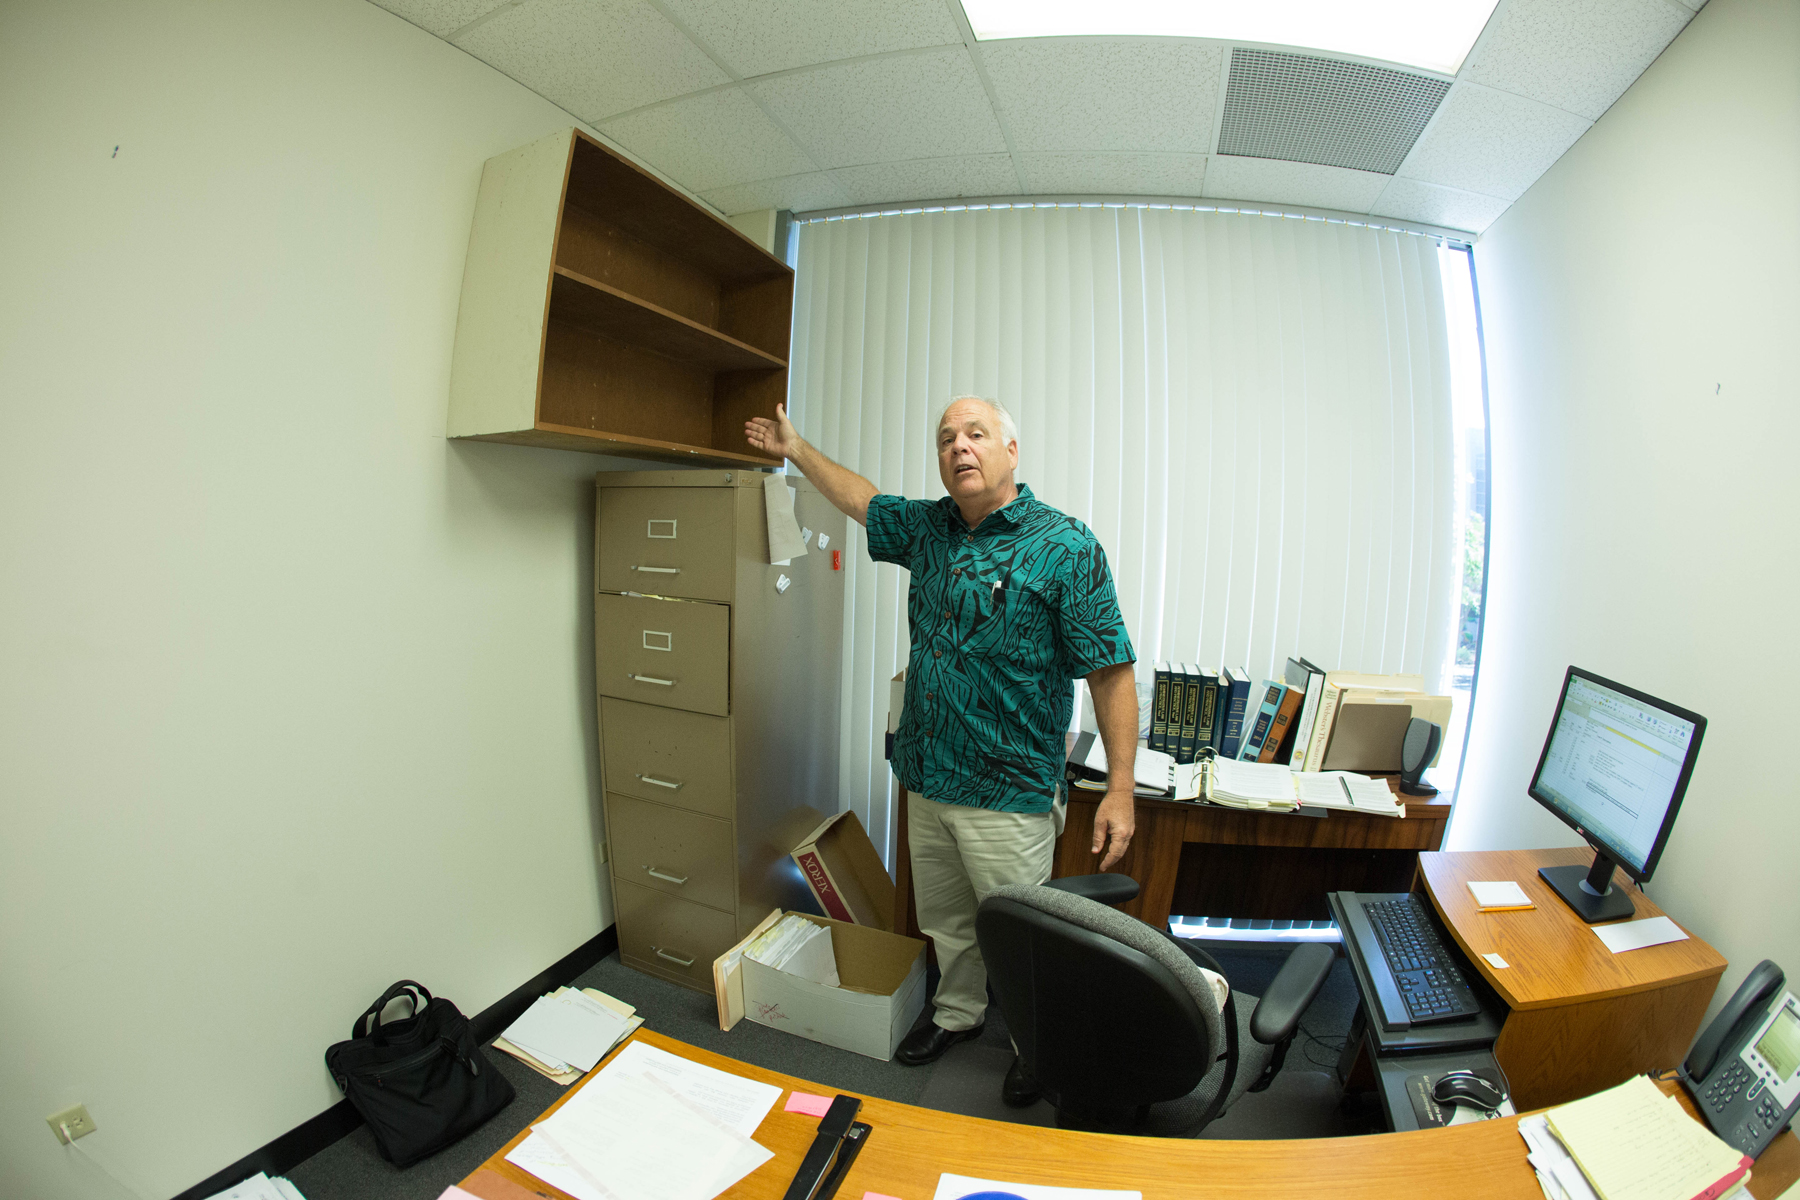 <p>June 7: Honolulu Ethics Commission Director Chuck Totto clears out his office during one of his final days on the job. Commission members forced him out after ongoing quarrels between Totto and the administration of Mayor Kirk Caldwell. <em>Anthony Quintano/Civil Beat</em></p>